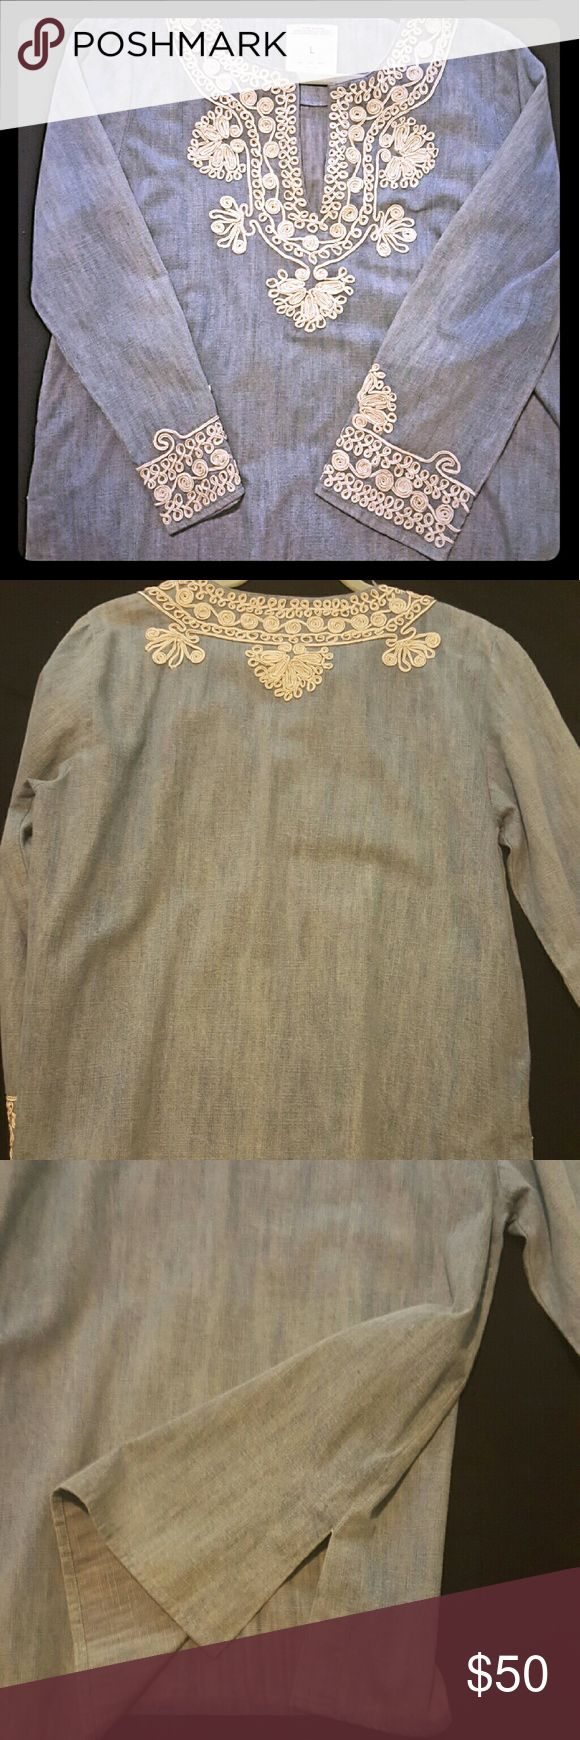 ZARA BOHO DENIM SHIRT - WOMENS NEVER WORN. Bought this top on impulse and realized it's just not my style. Excellent quality denim and the lacing is very pretty. Pair with leggings and cute booties! Zara Tops Blouses